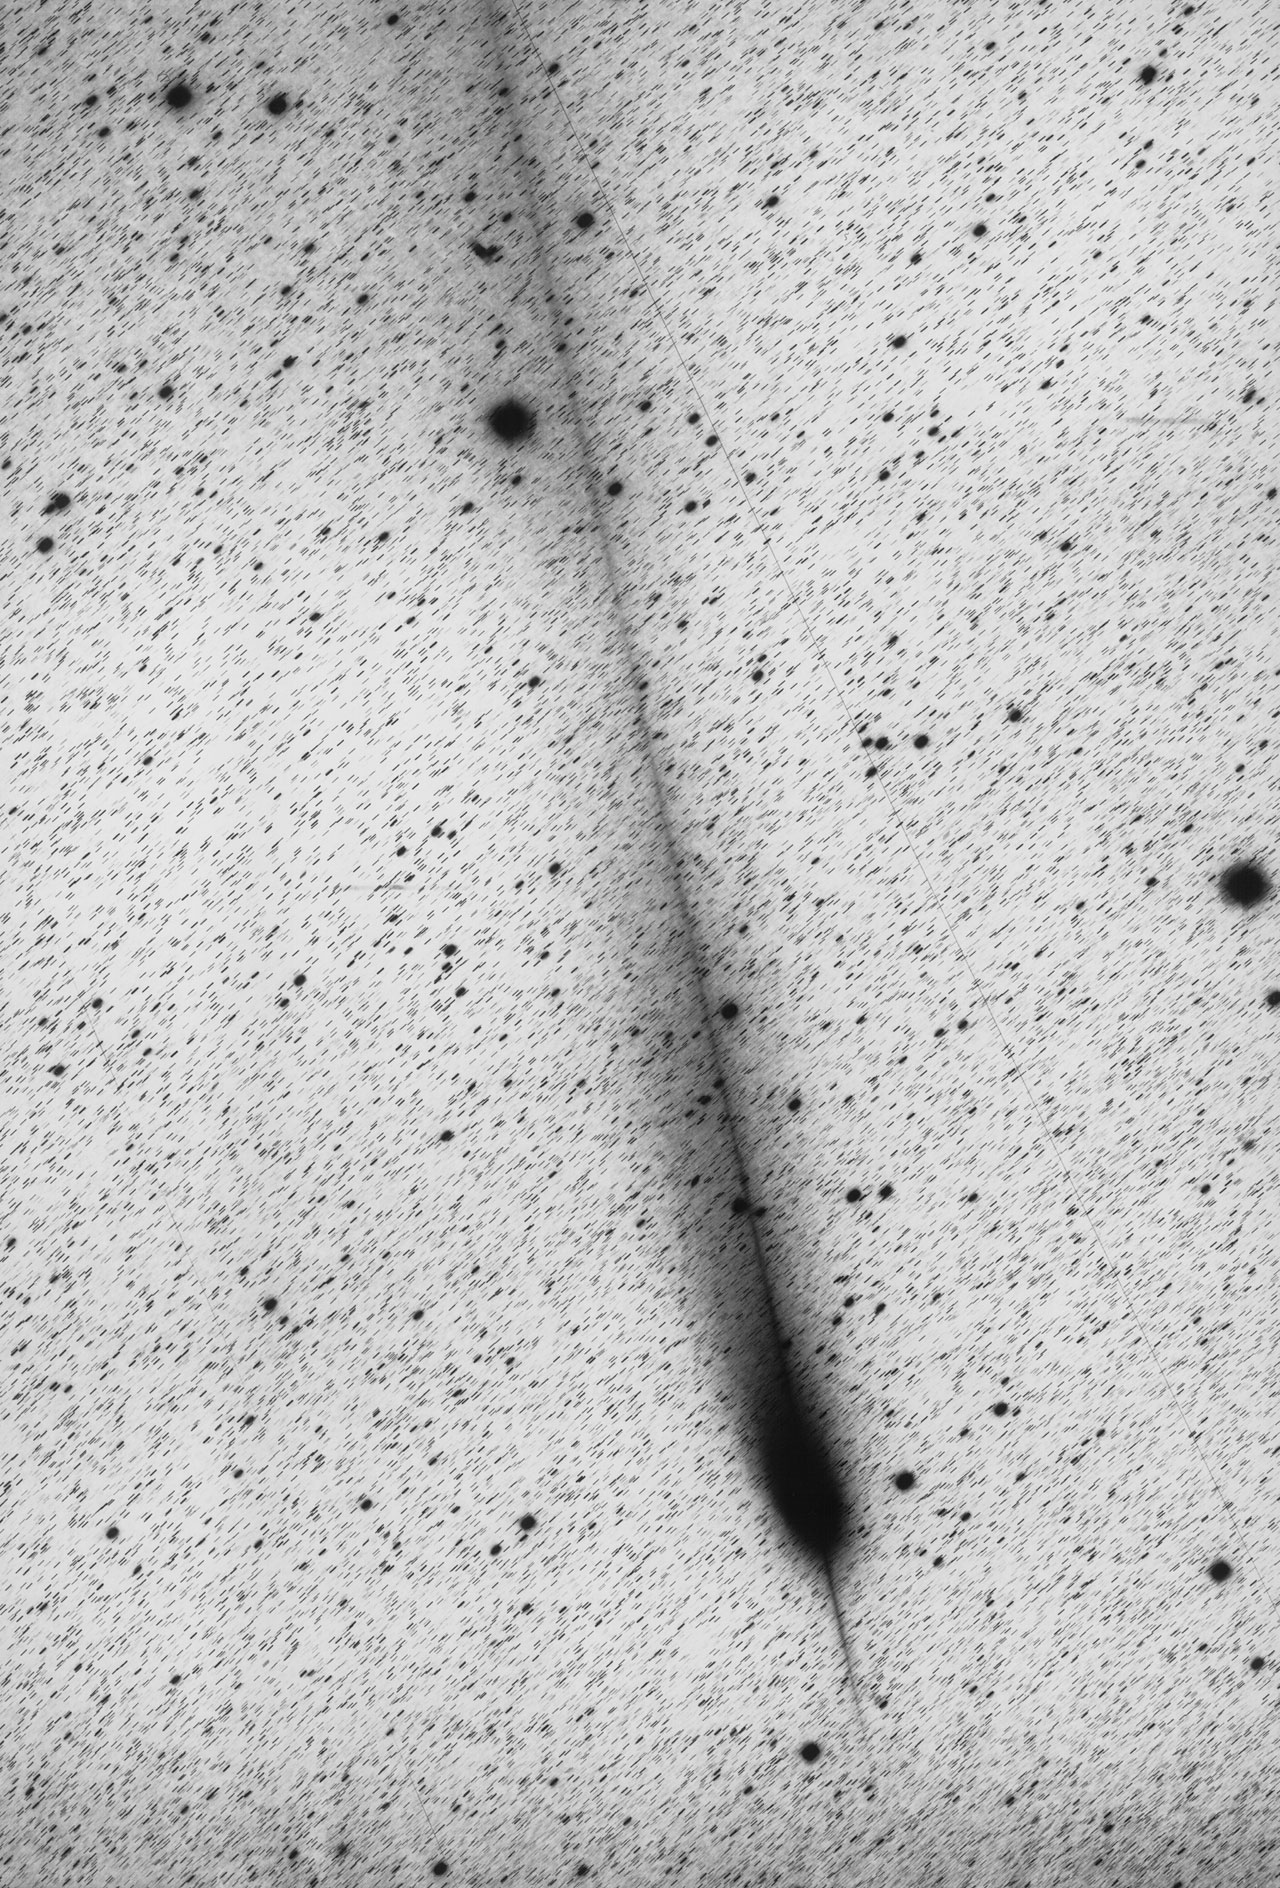 The Unusual Tails of Comet Hale-Bopp